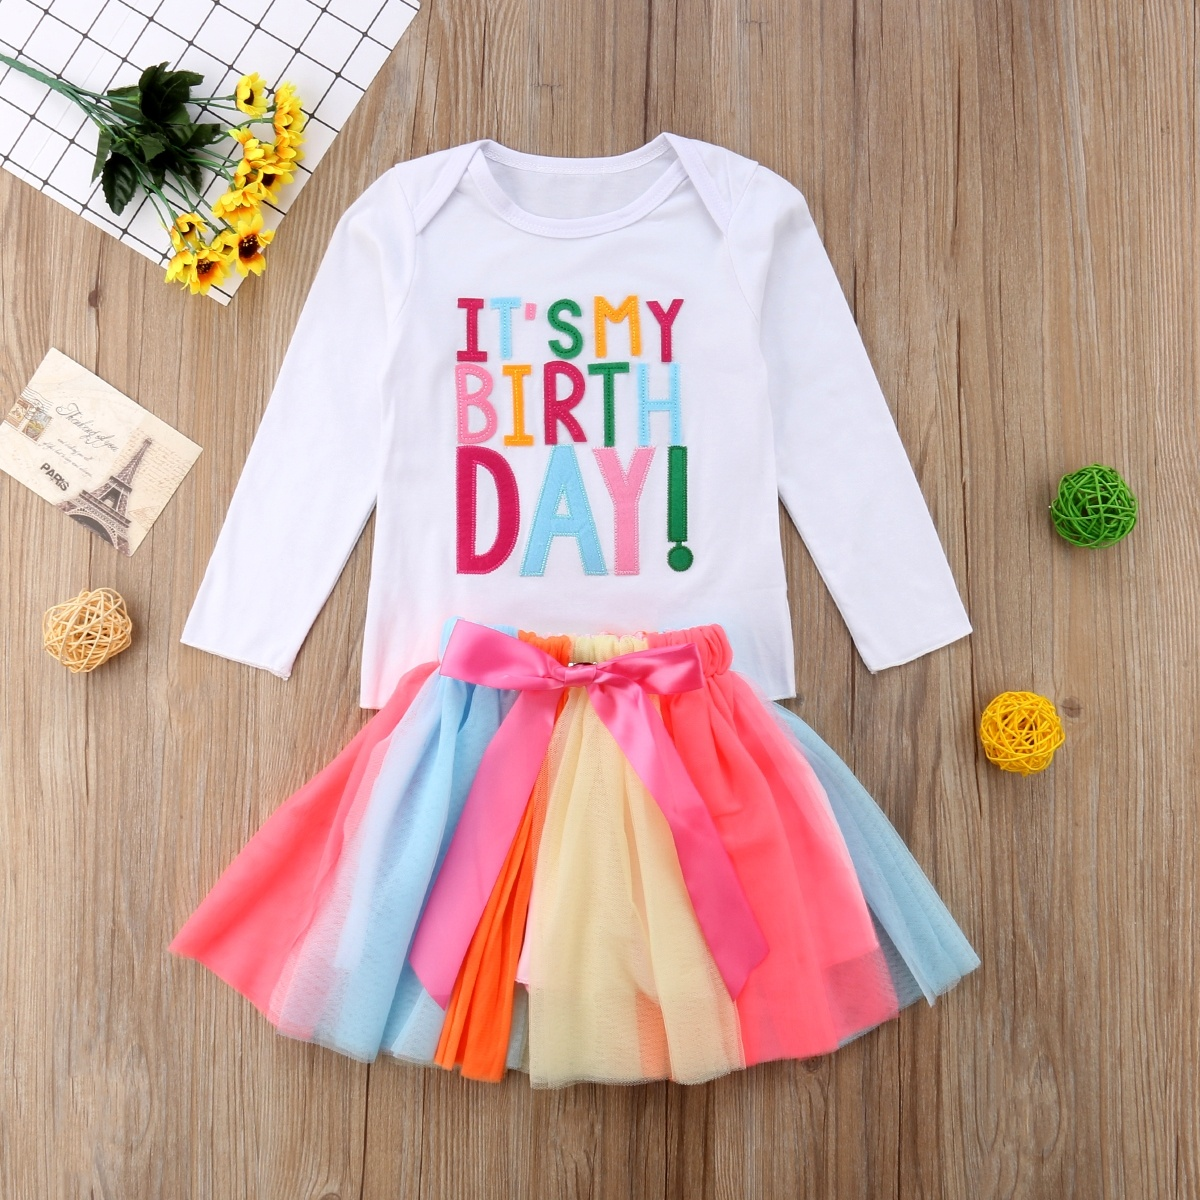 1a5aee15b Baby Girl Kid Toddler ITS MY Birthday T-shirt+tutu Skirt Dress Outfit  Clothing NEW